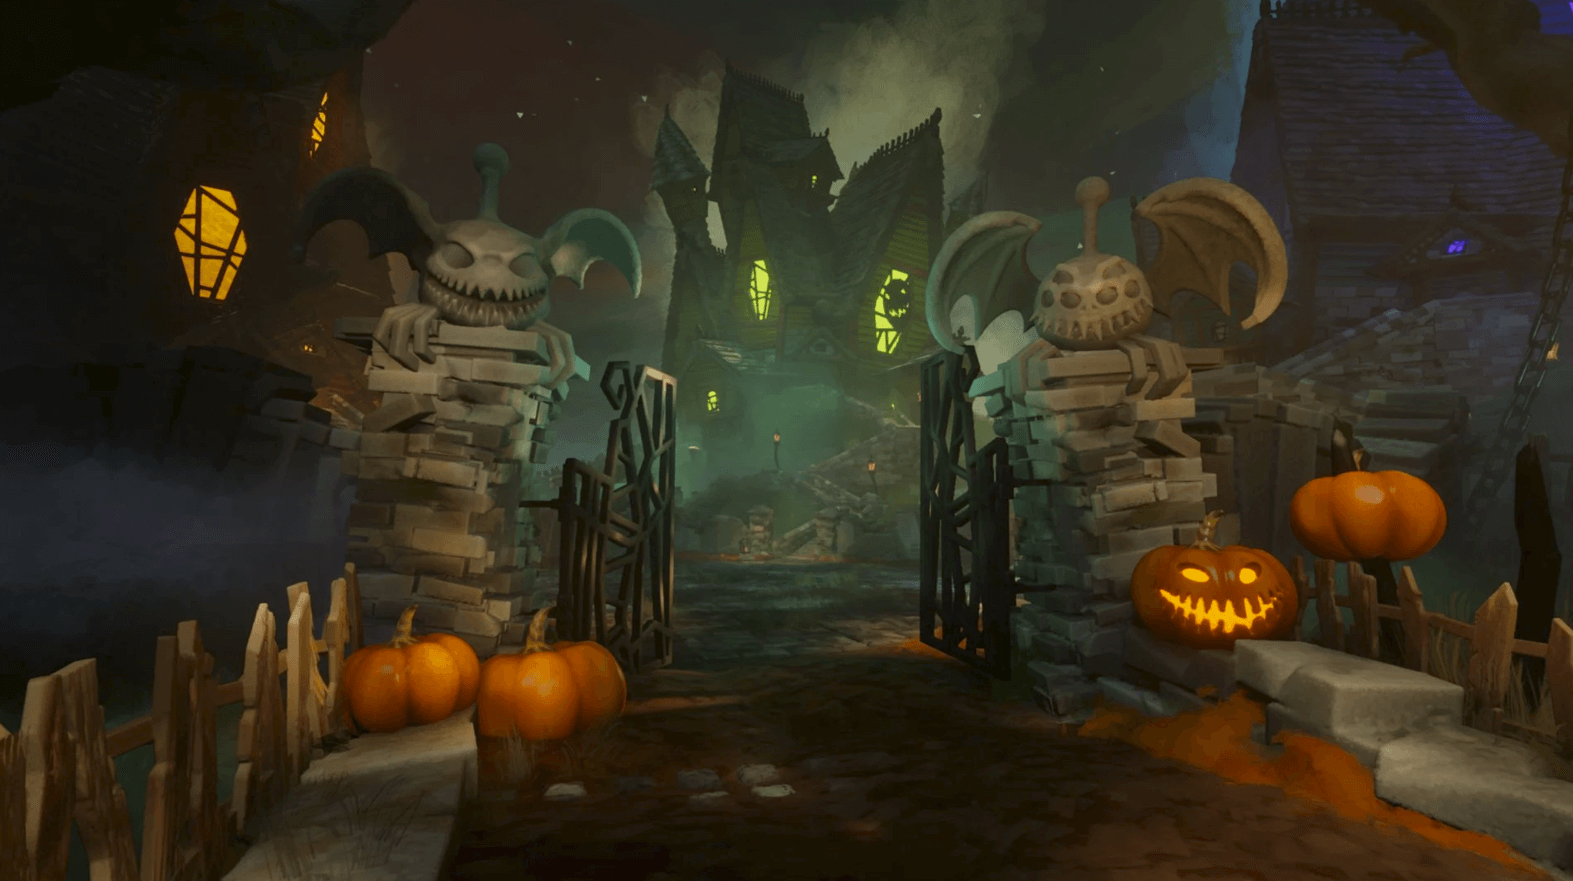 A screenshot of All Hallows' Dreams 2020. A pumpkin-lined path leads up to spooky haunted houses.